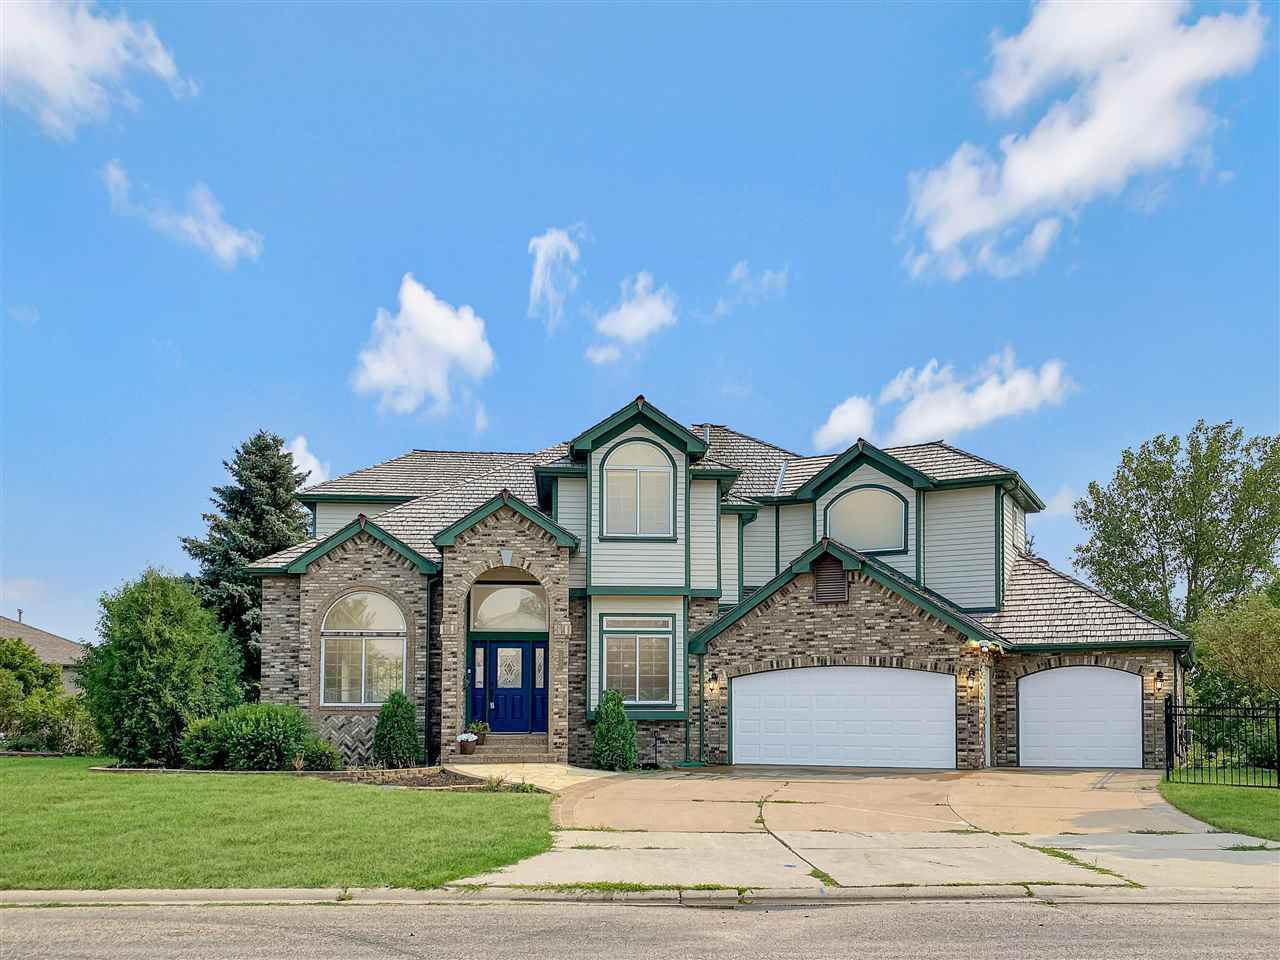 2417 11th Ave NW, Minot, ND 58703